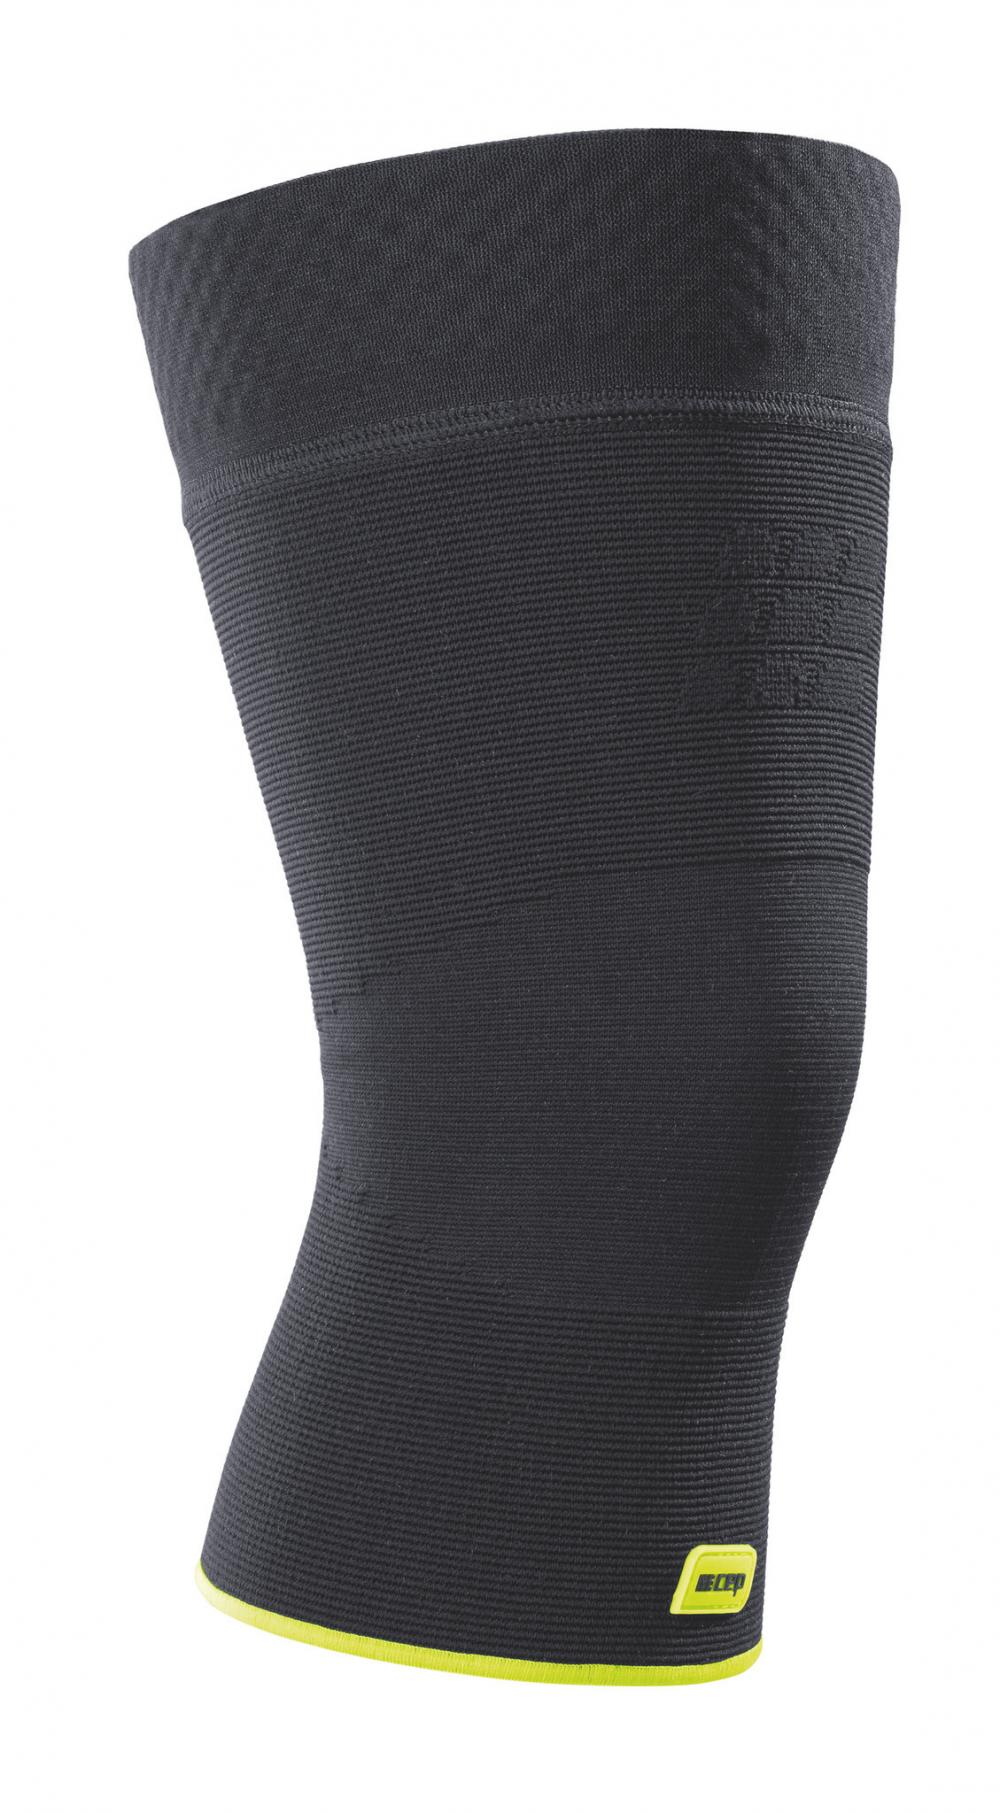 CEP Ortho + Compression Knee Sleeve, Size 3